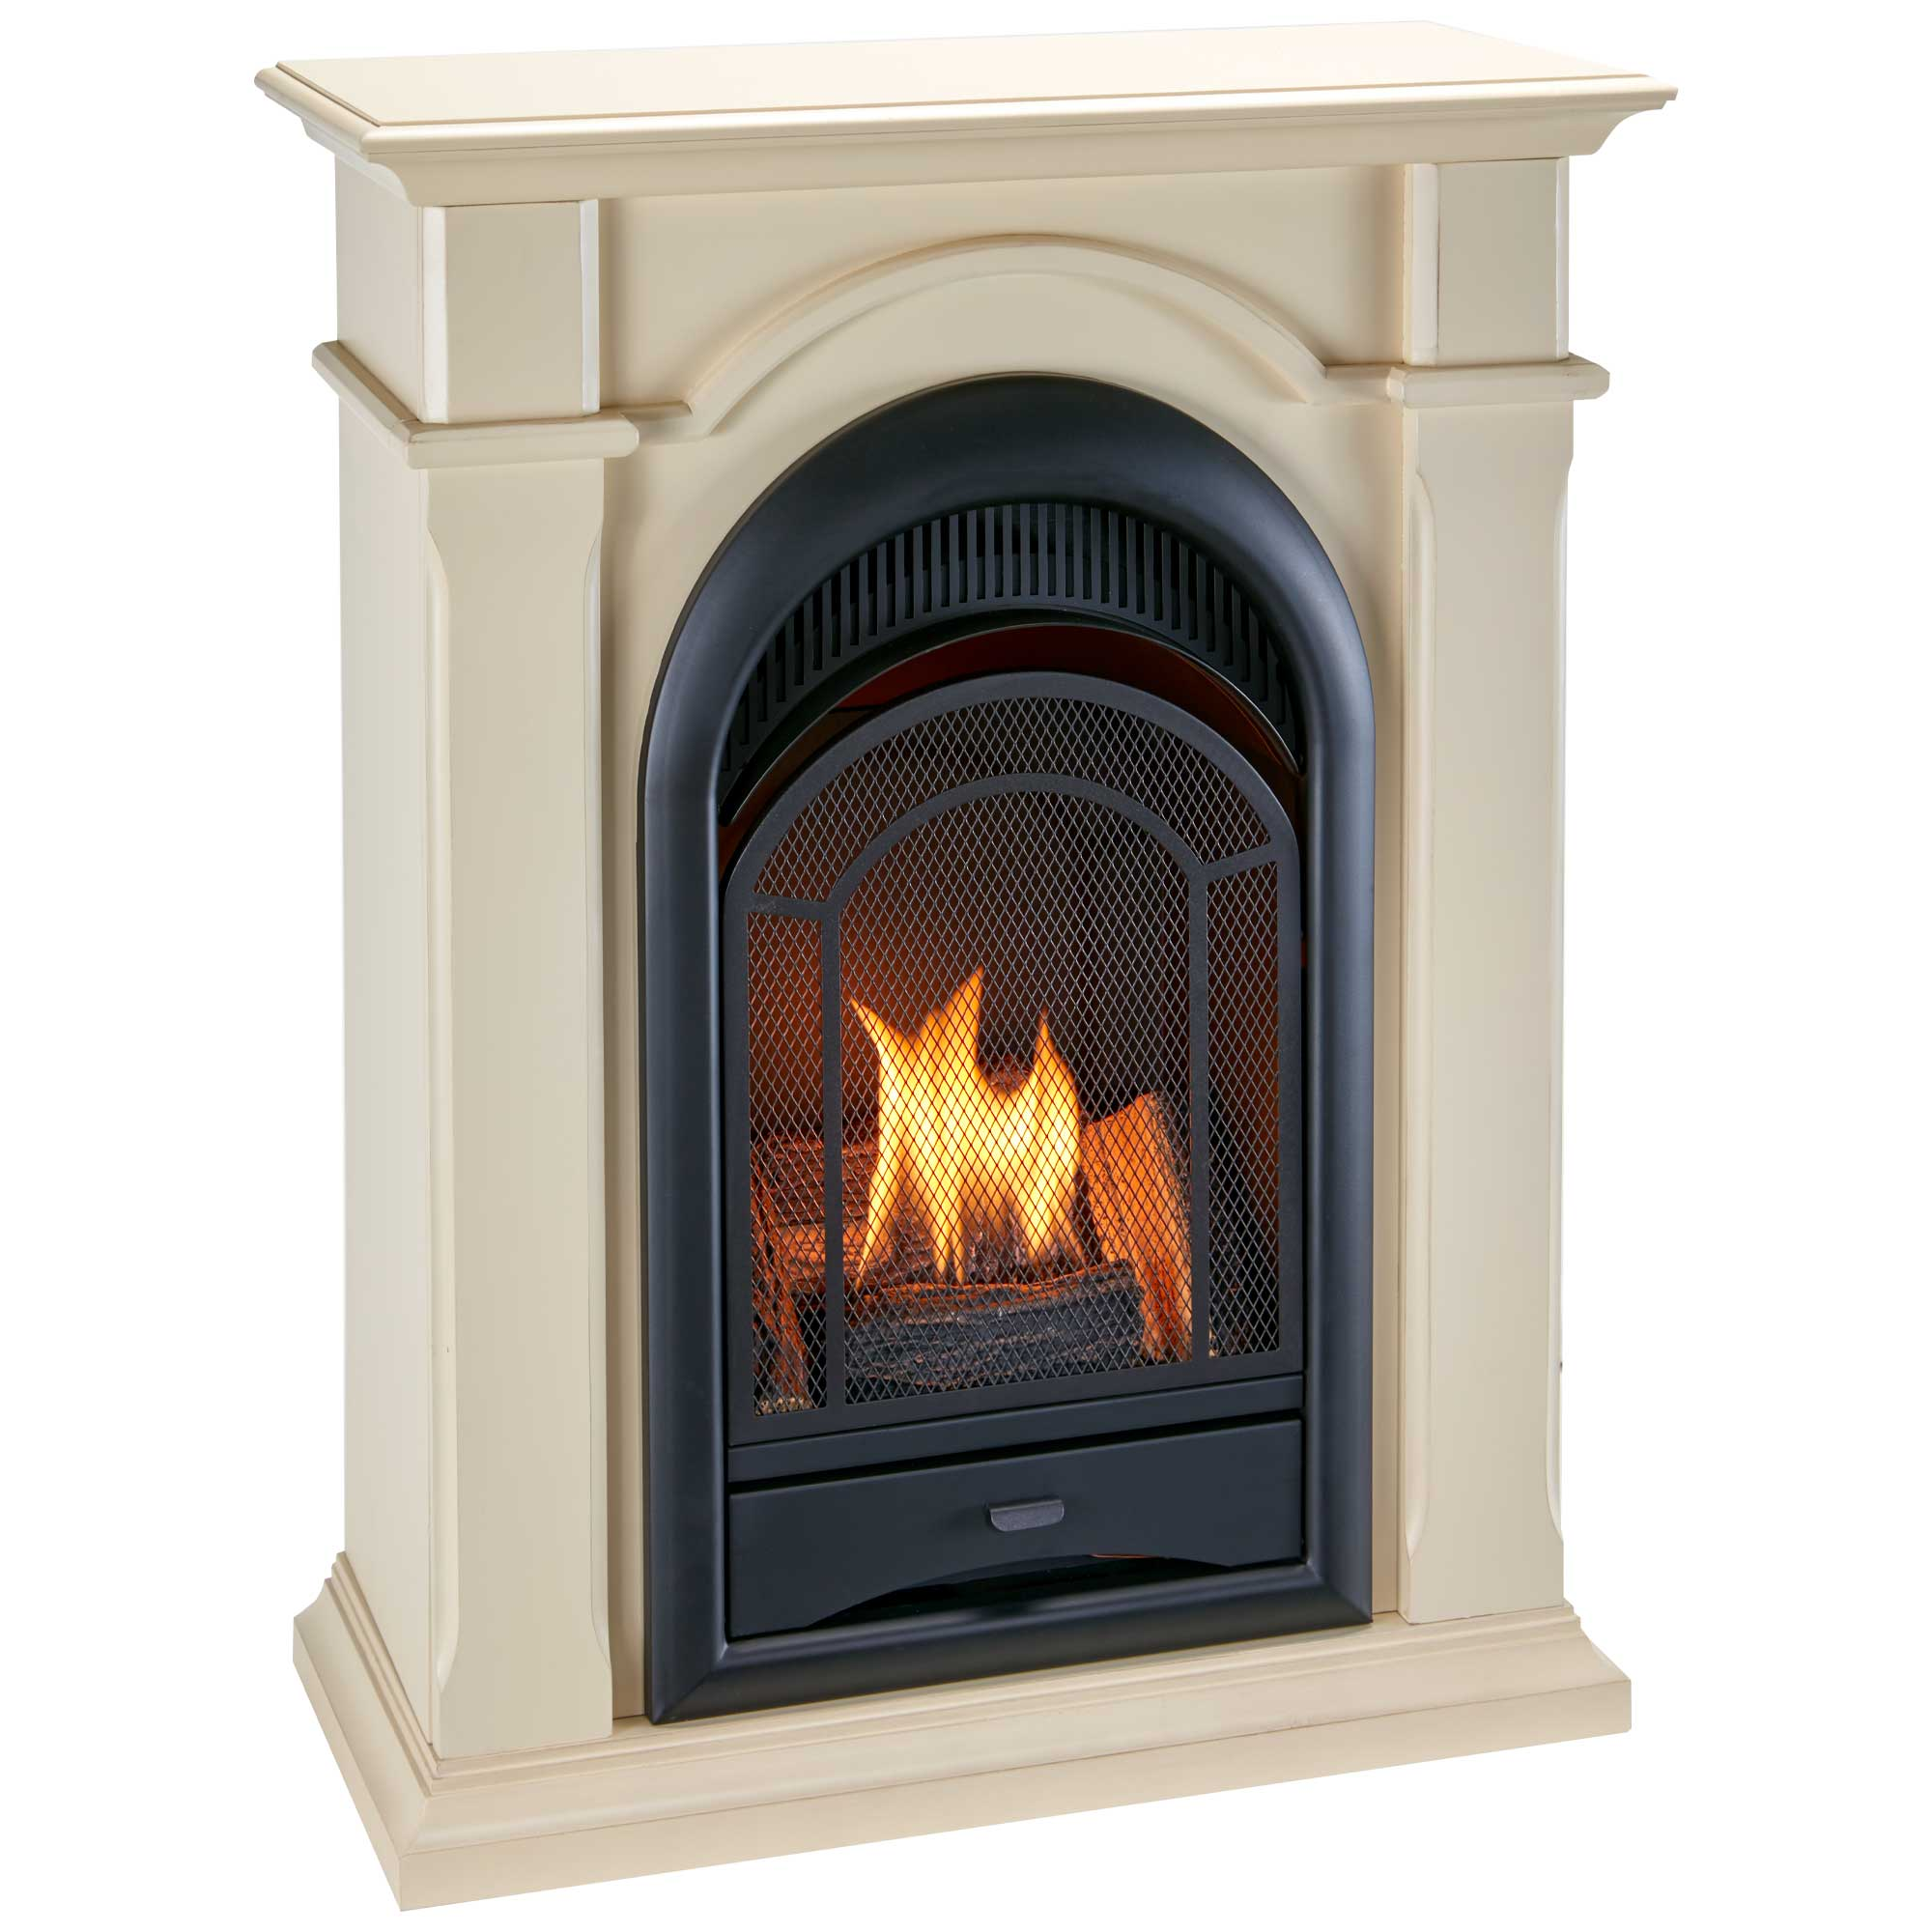 Procom Dual Fuel Ventless Gas Fireplace System With Corner